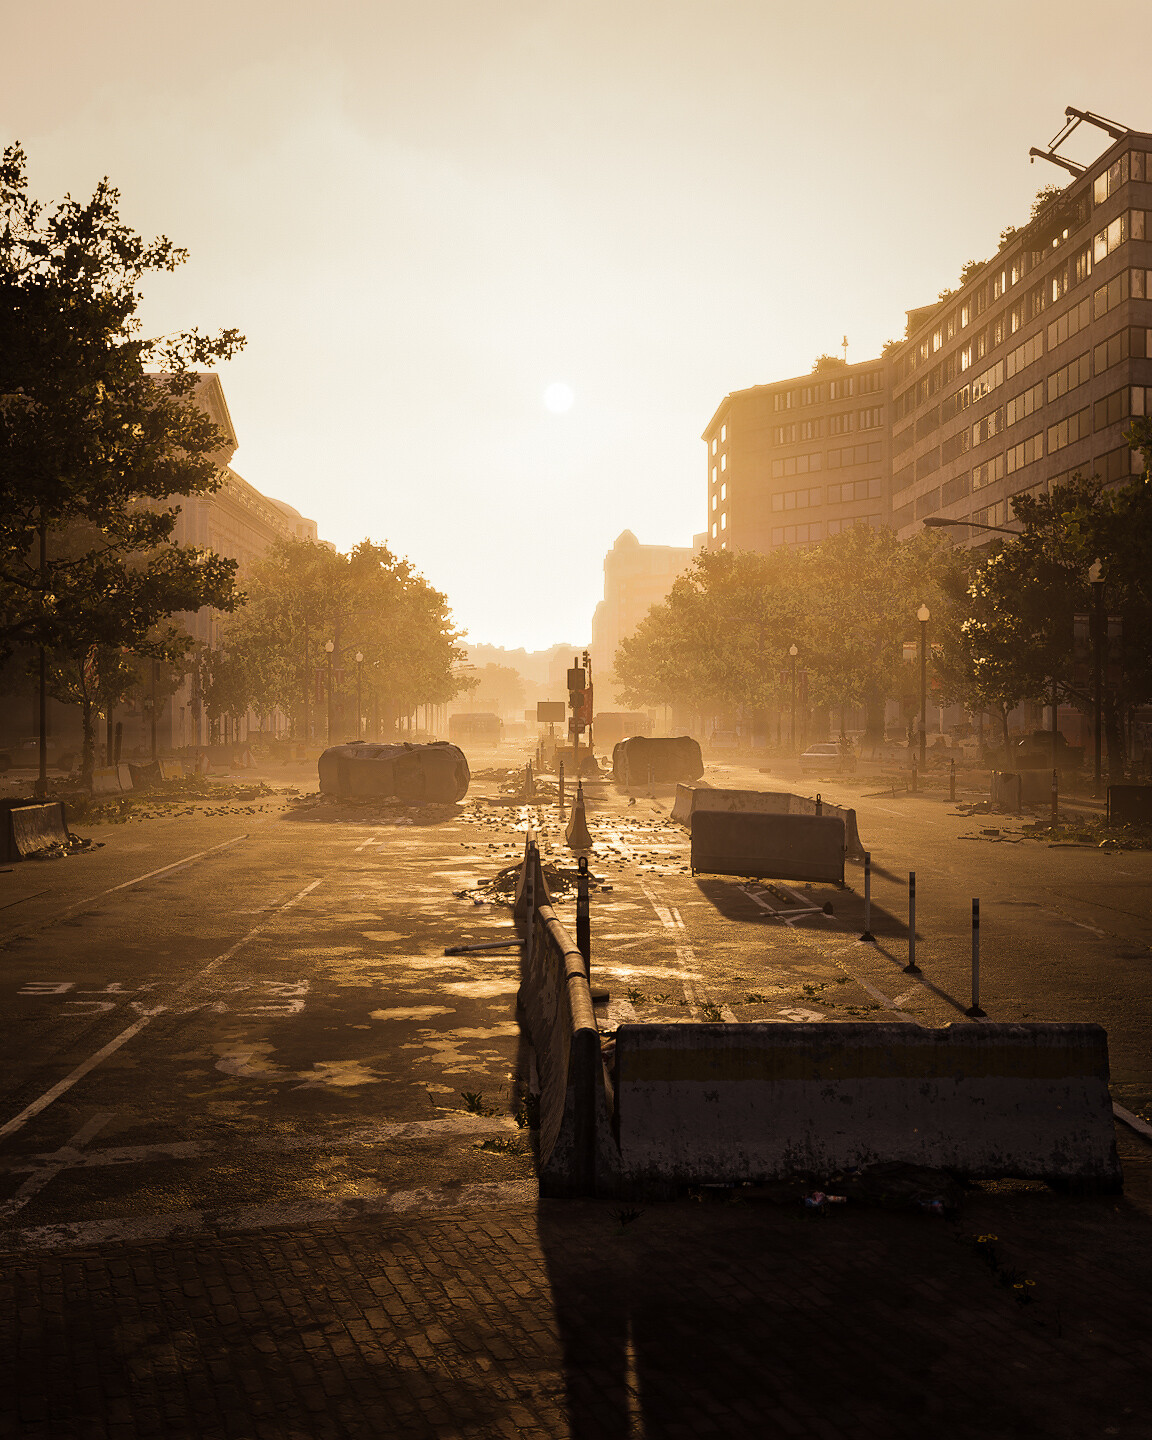 47468819161_66052533e9_h.jpg - Tom Clancy's The Division 2